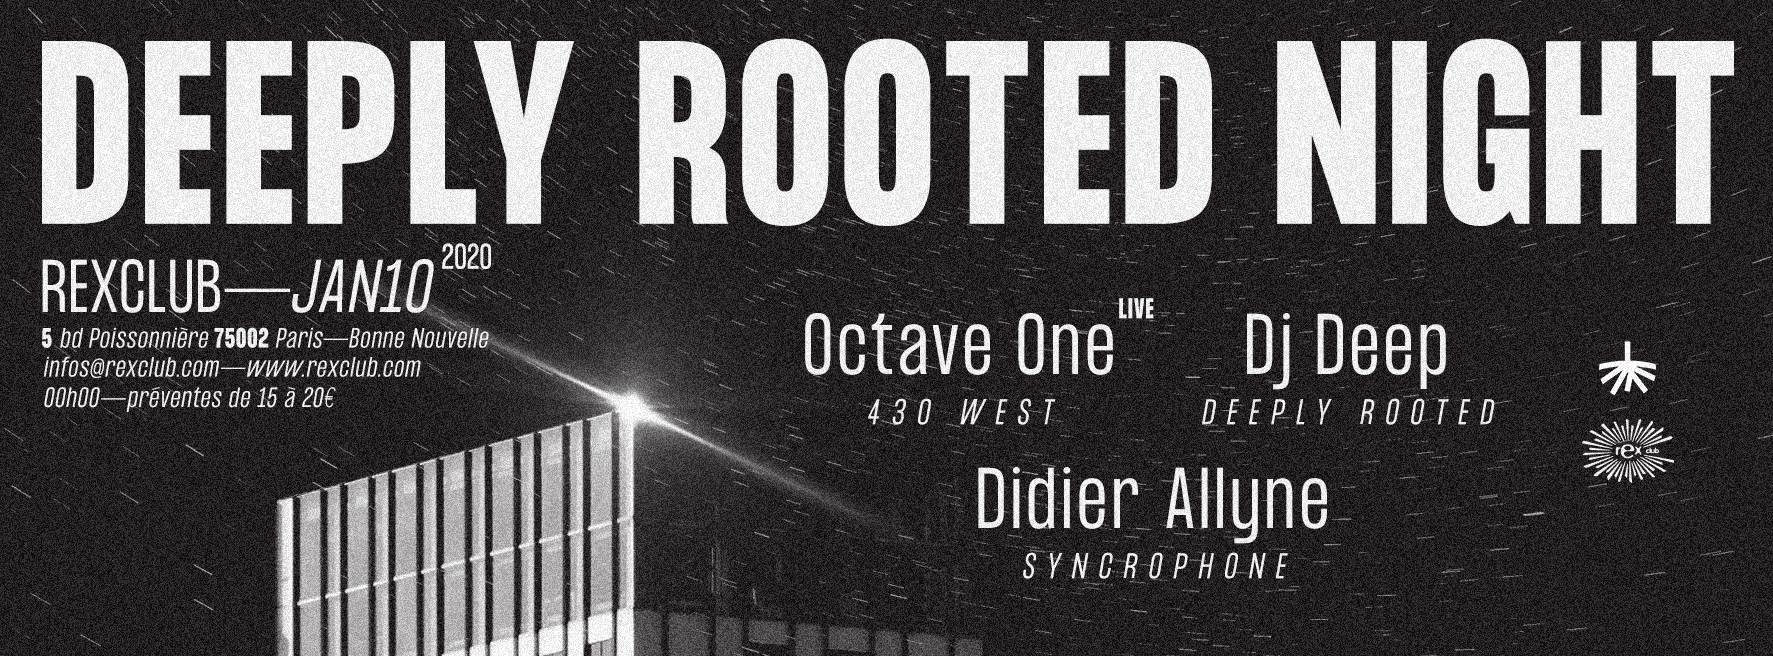 Deeply Rooted Night: Octave One Live, DJ Deep, Didier Allyne